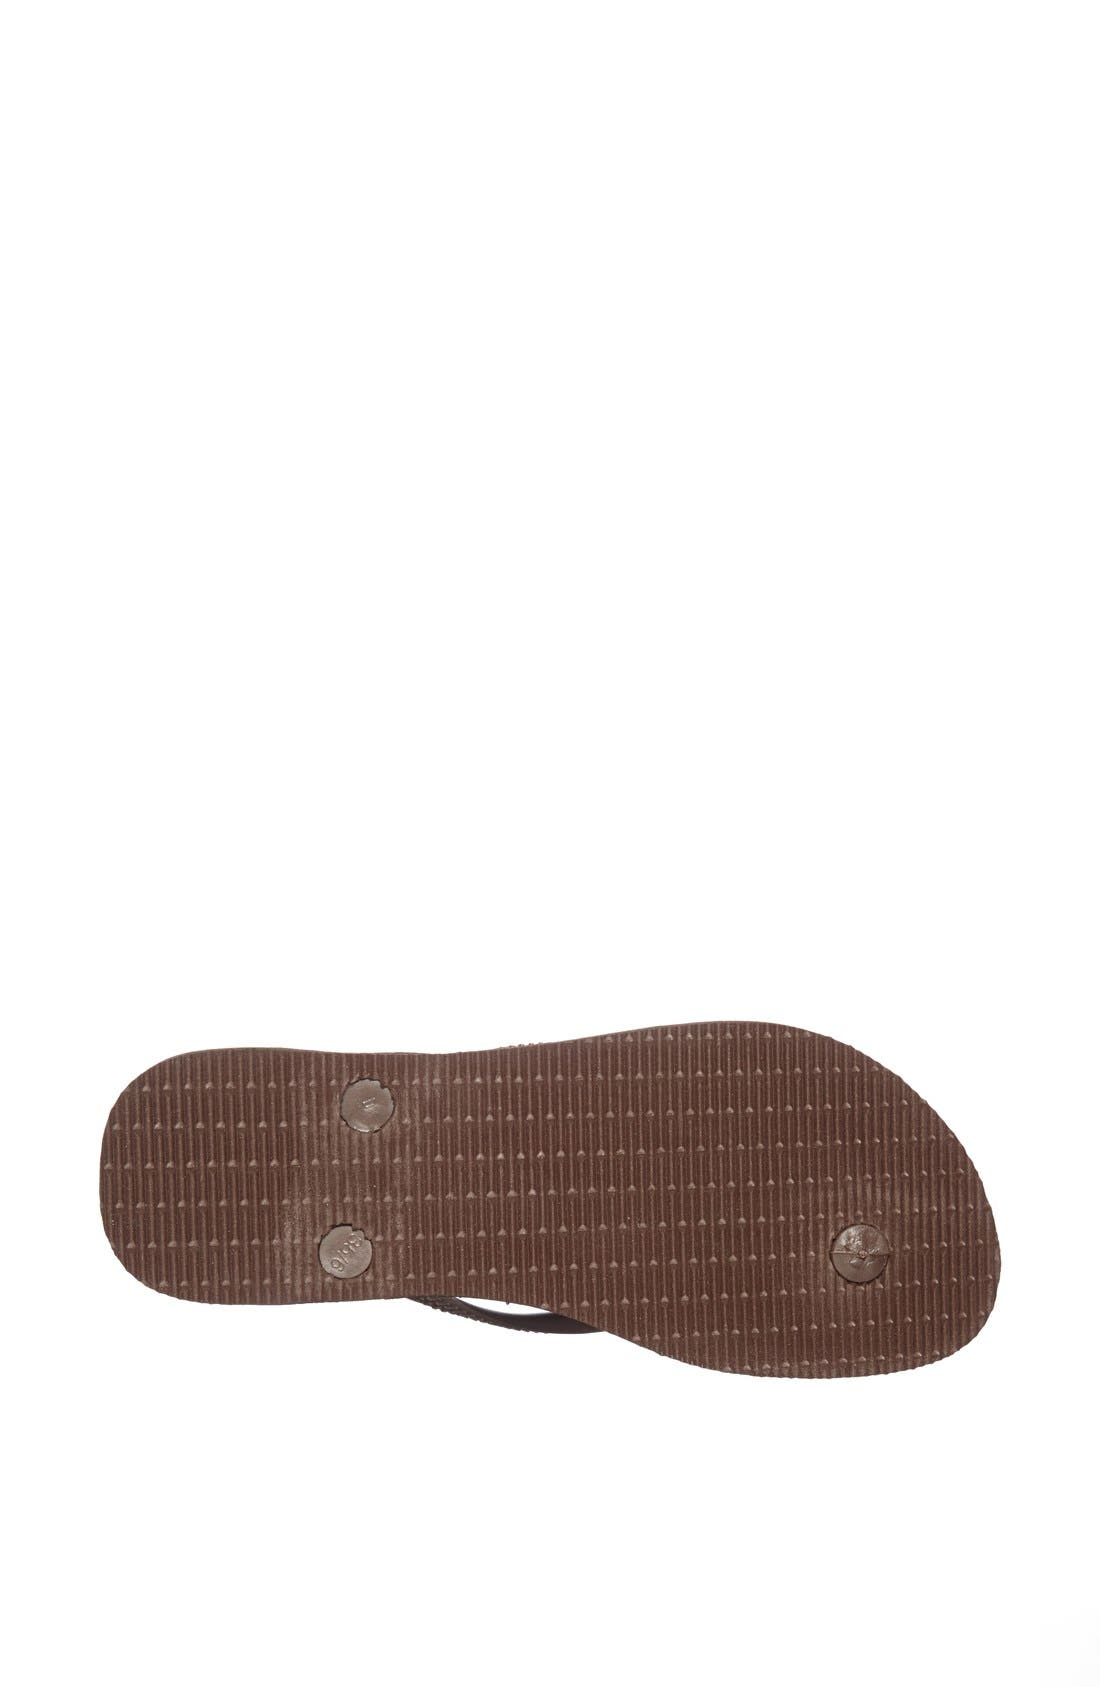 Alternate Image 4  - Havaianas 'Slim' Flip Flop (Women)